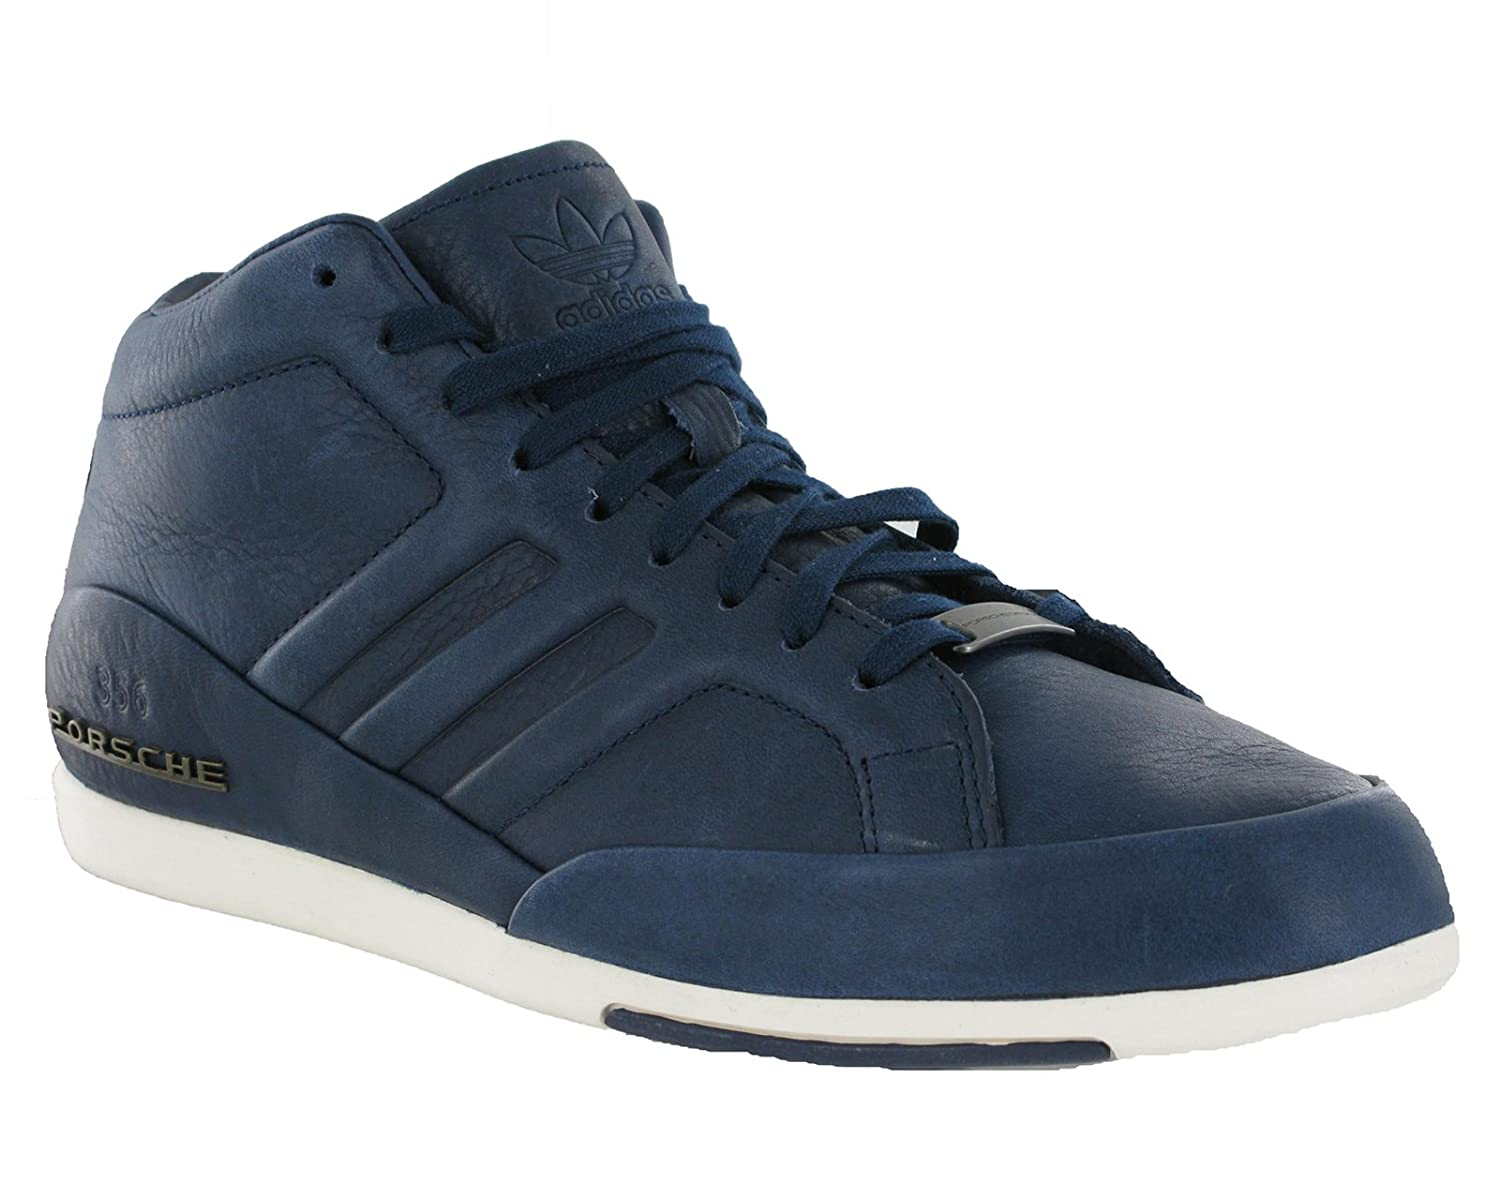 separation shoes 206f1 c6268 adidas Mens Originals Porsche 356 Mid Navy Casual Fashion Smart Trainers  Shoes (UK 8)  Amazon.co.uk  Shoes   Bags